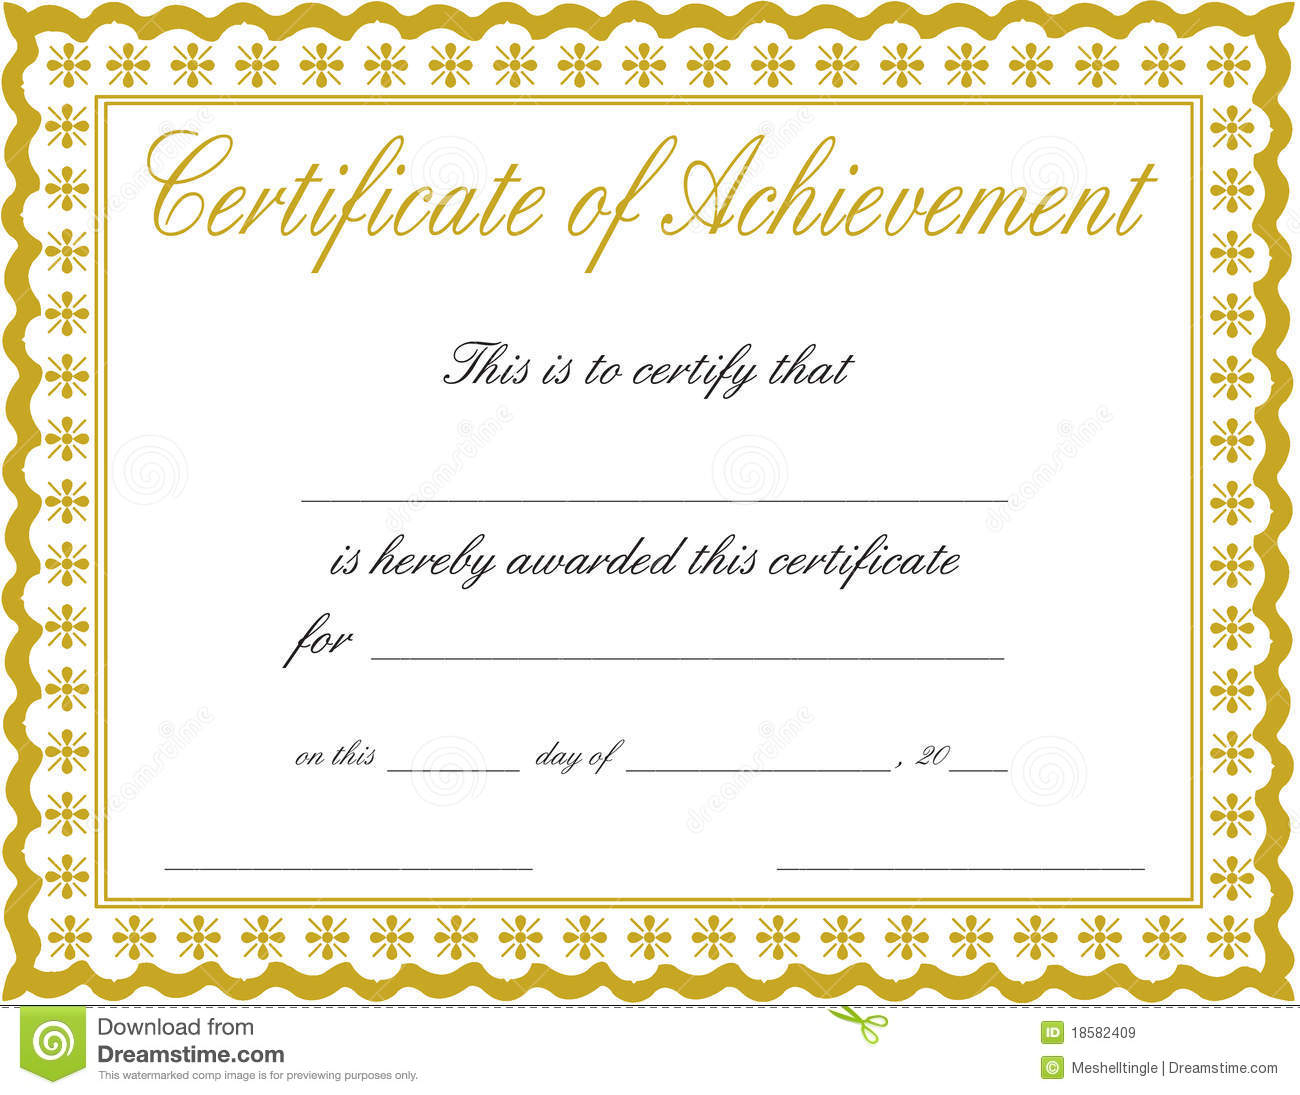 Certificate Of Achievement Stock Image. Image Of Bronze - 18582409 - Free Printable Blank Certificates Of Achievement